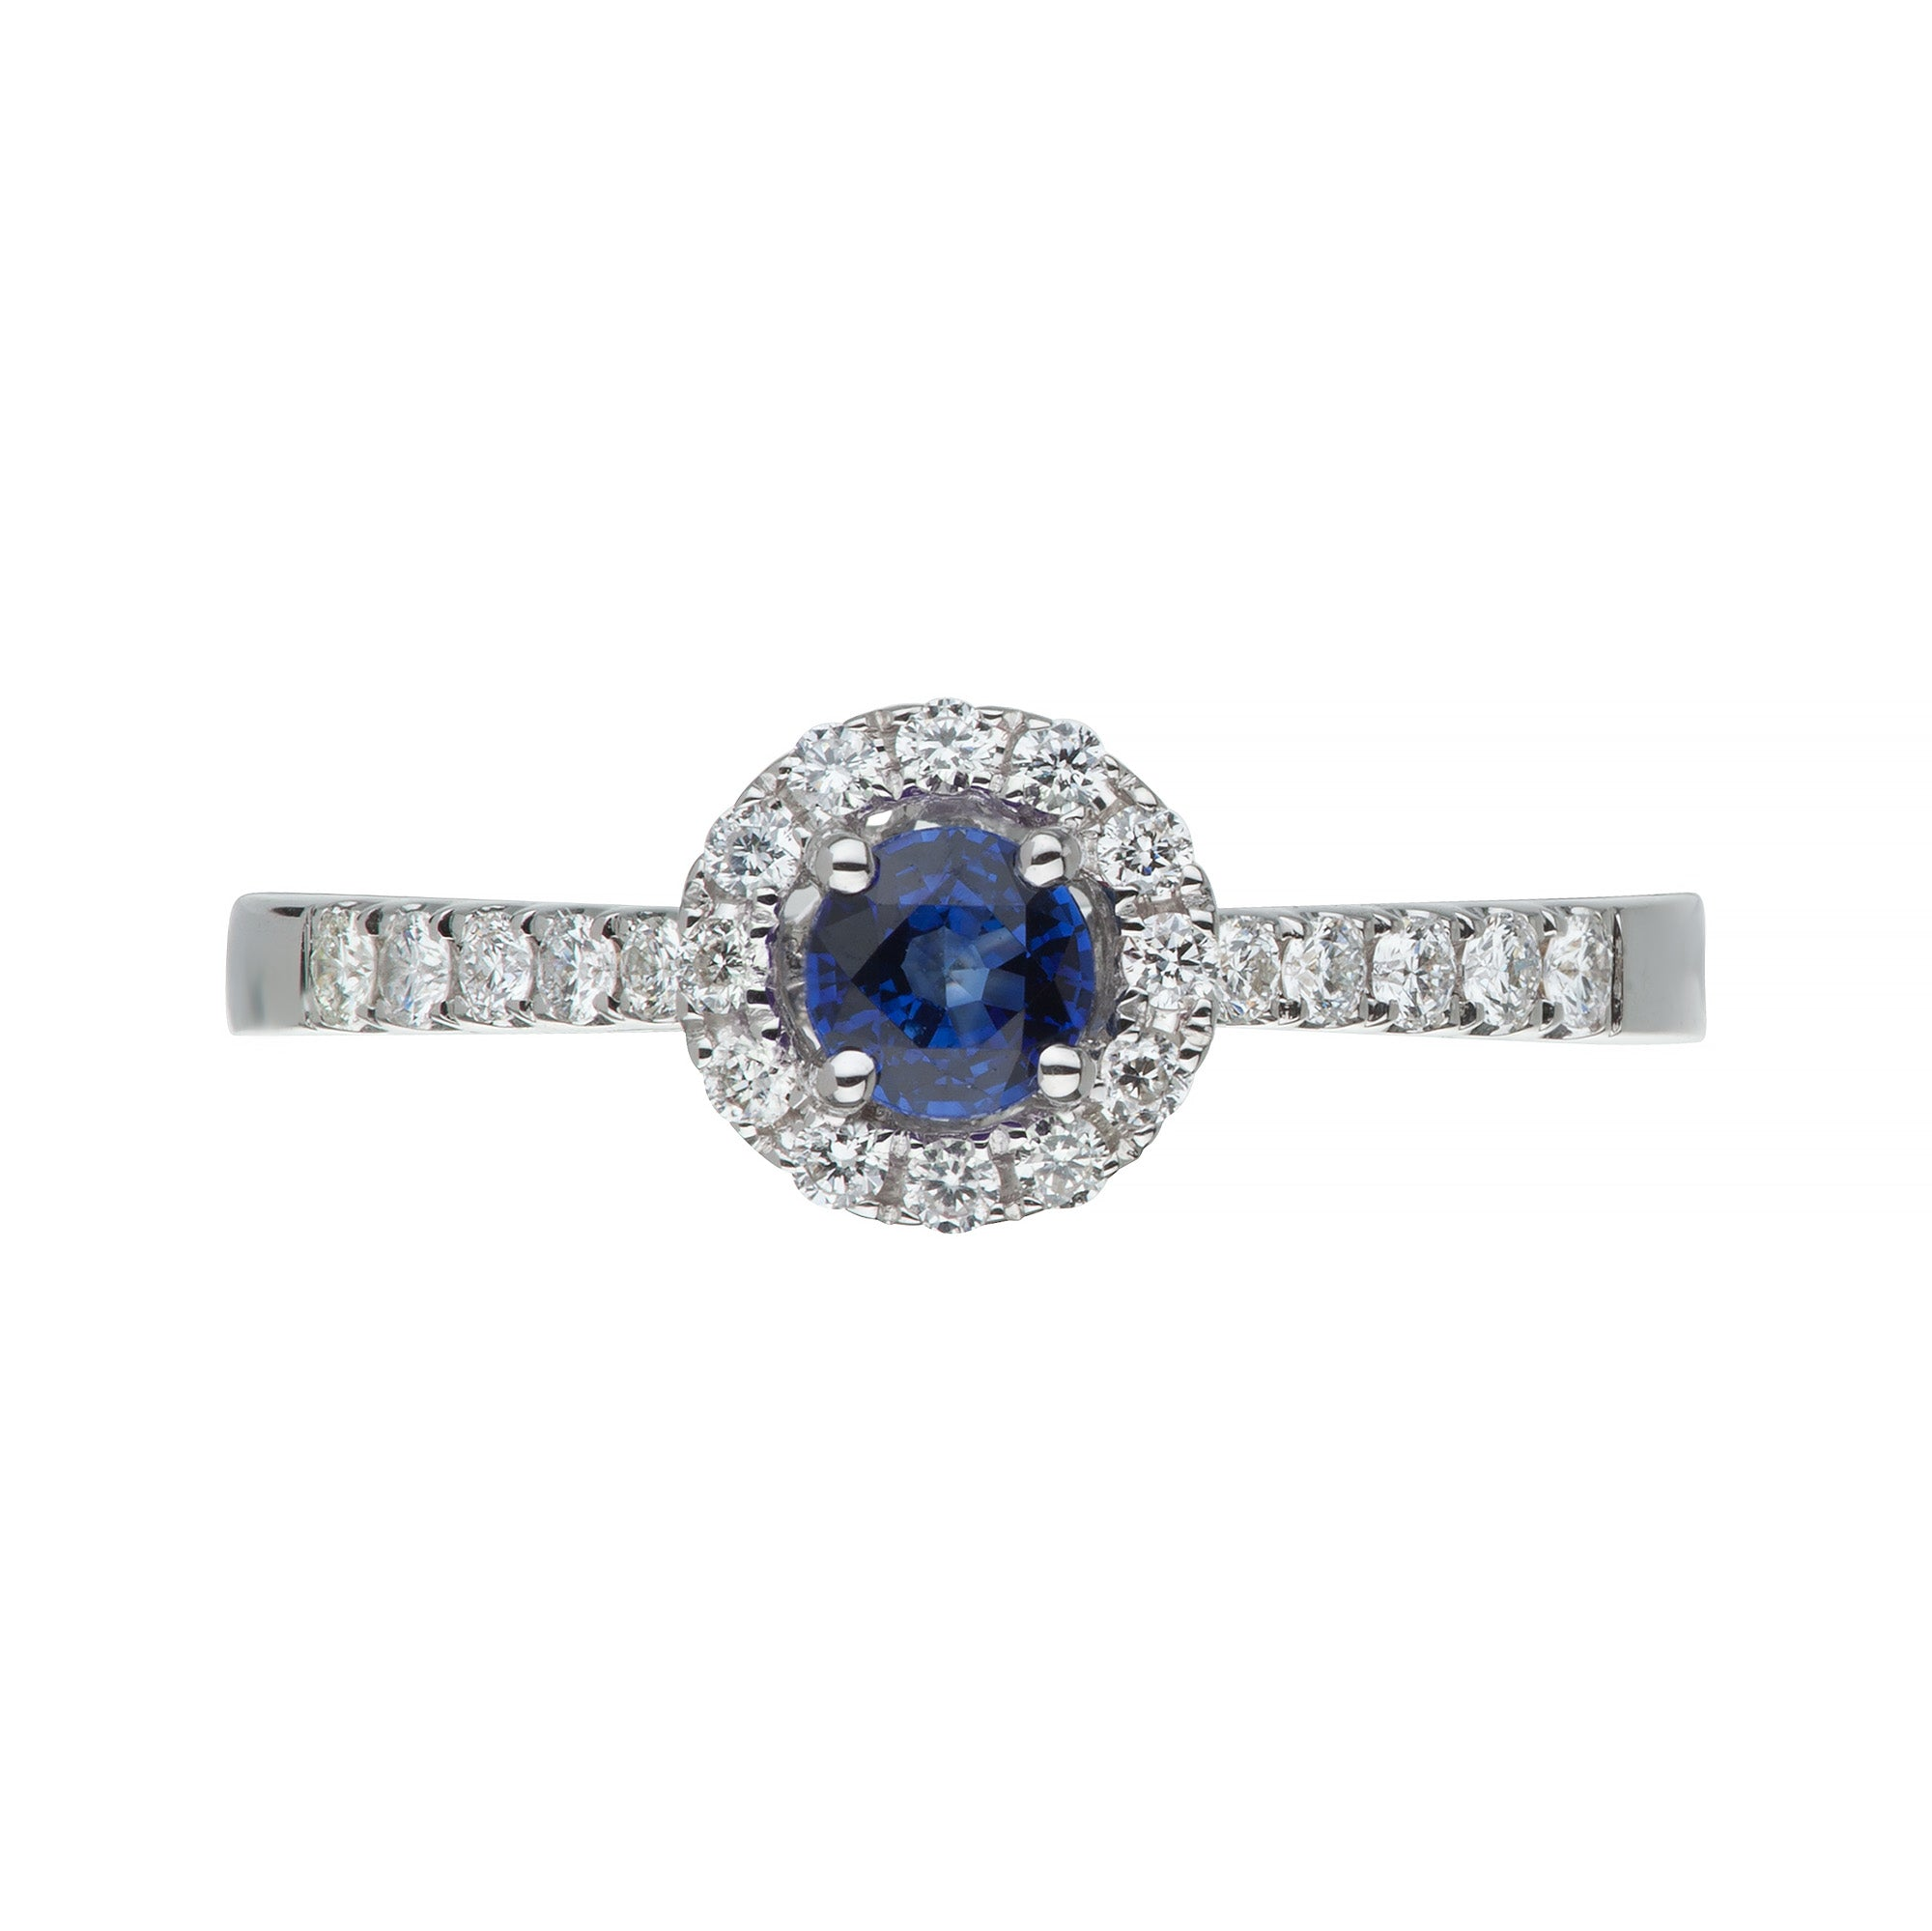 White Gold Sapphire & Diamond Halo Ring